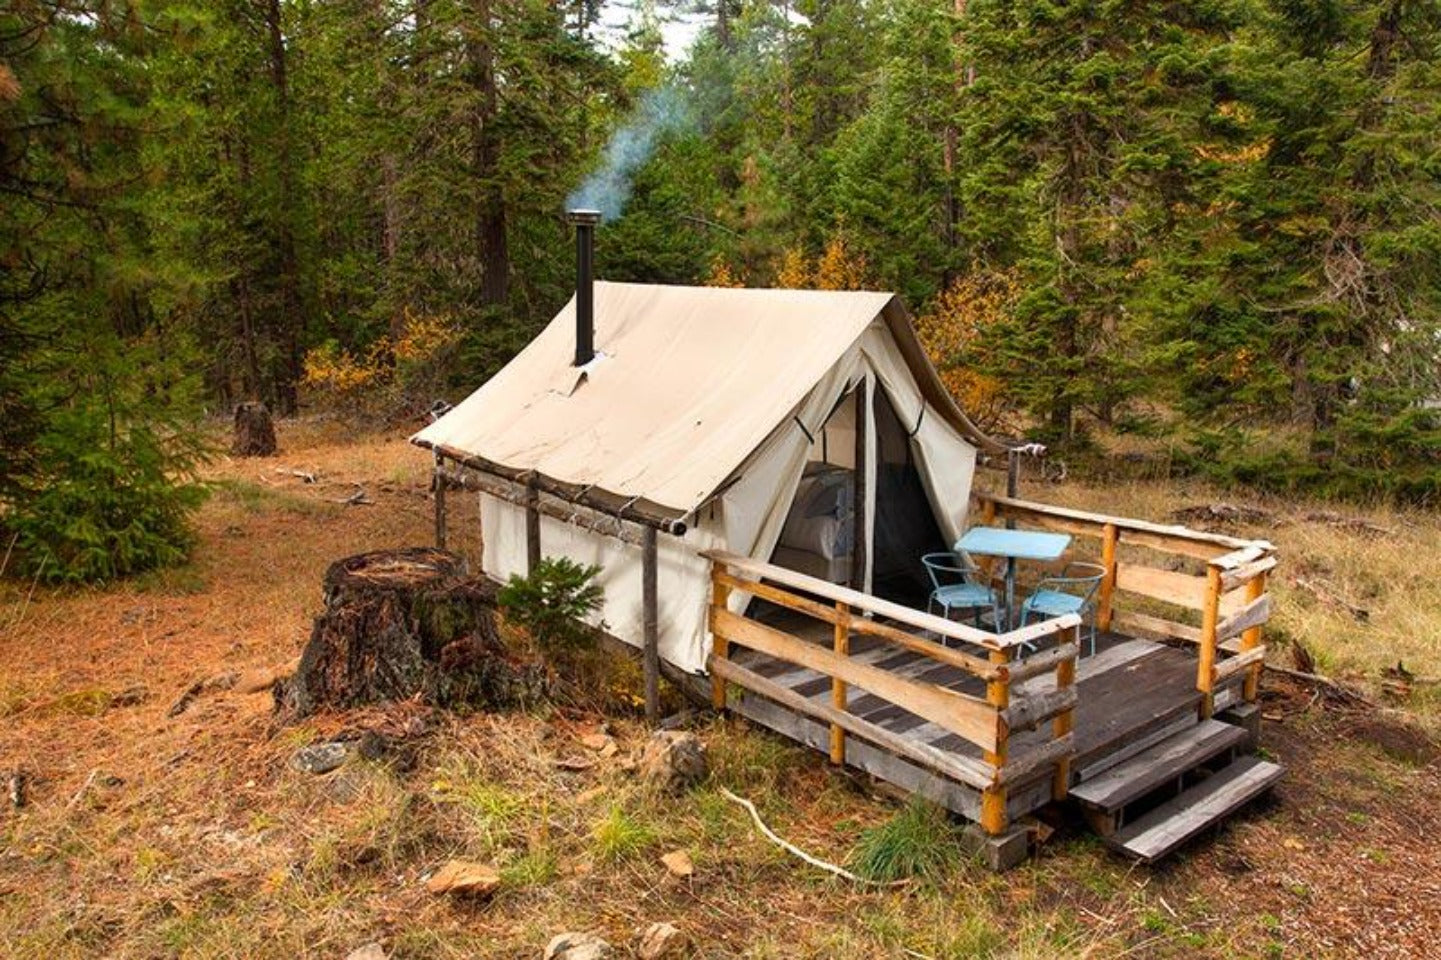 Glamping Tent - Luxury Glamping Tent - Canvas Tent - Wall Tent